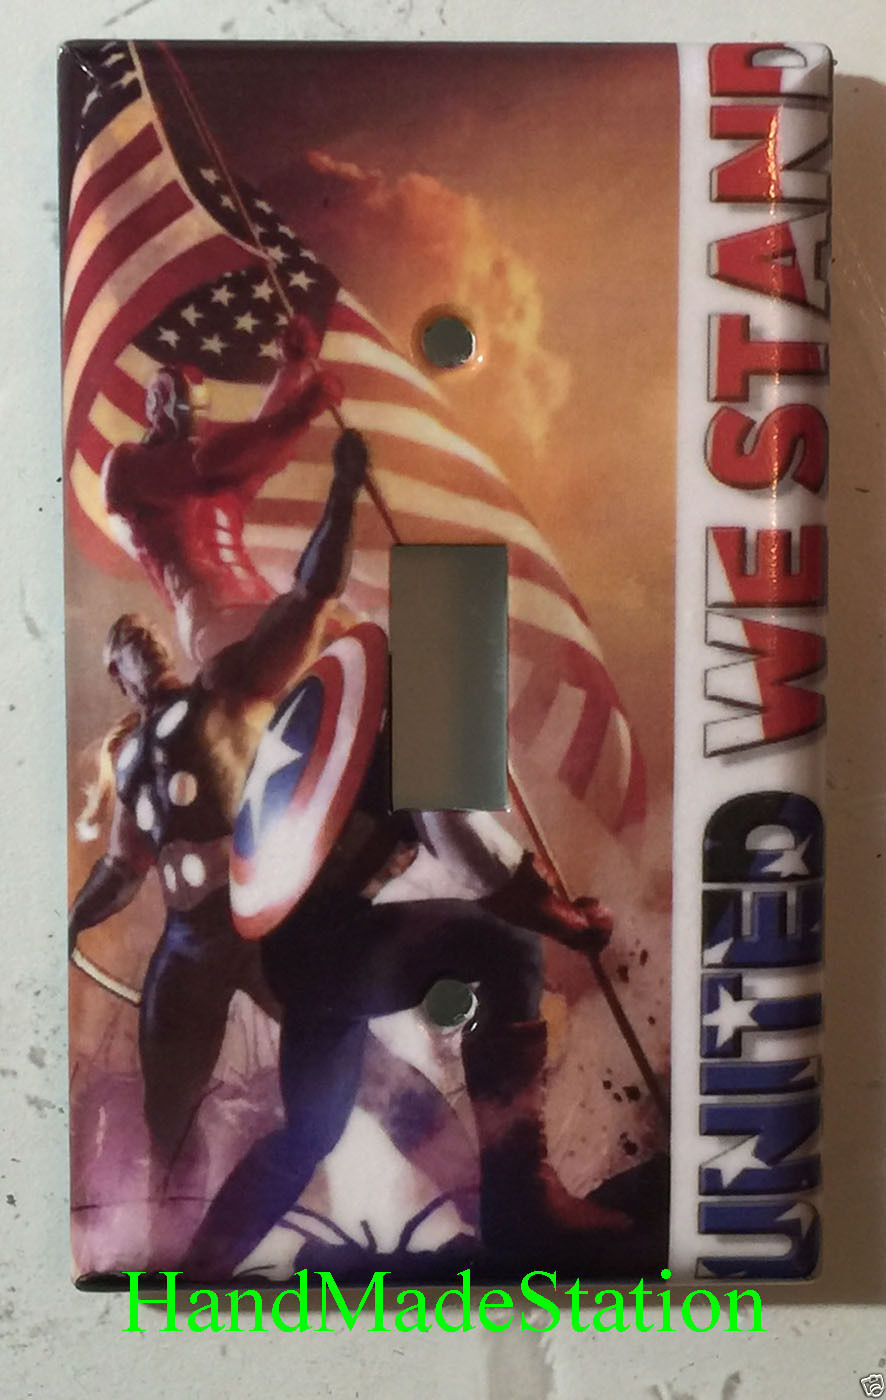 Comic Marvel Heroes United We Stand US Flag Switch Outlet Wall Cover Plate decor